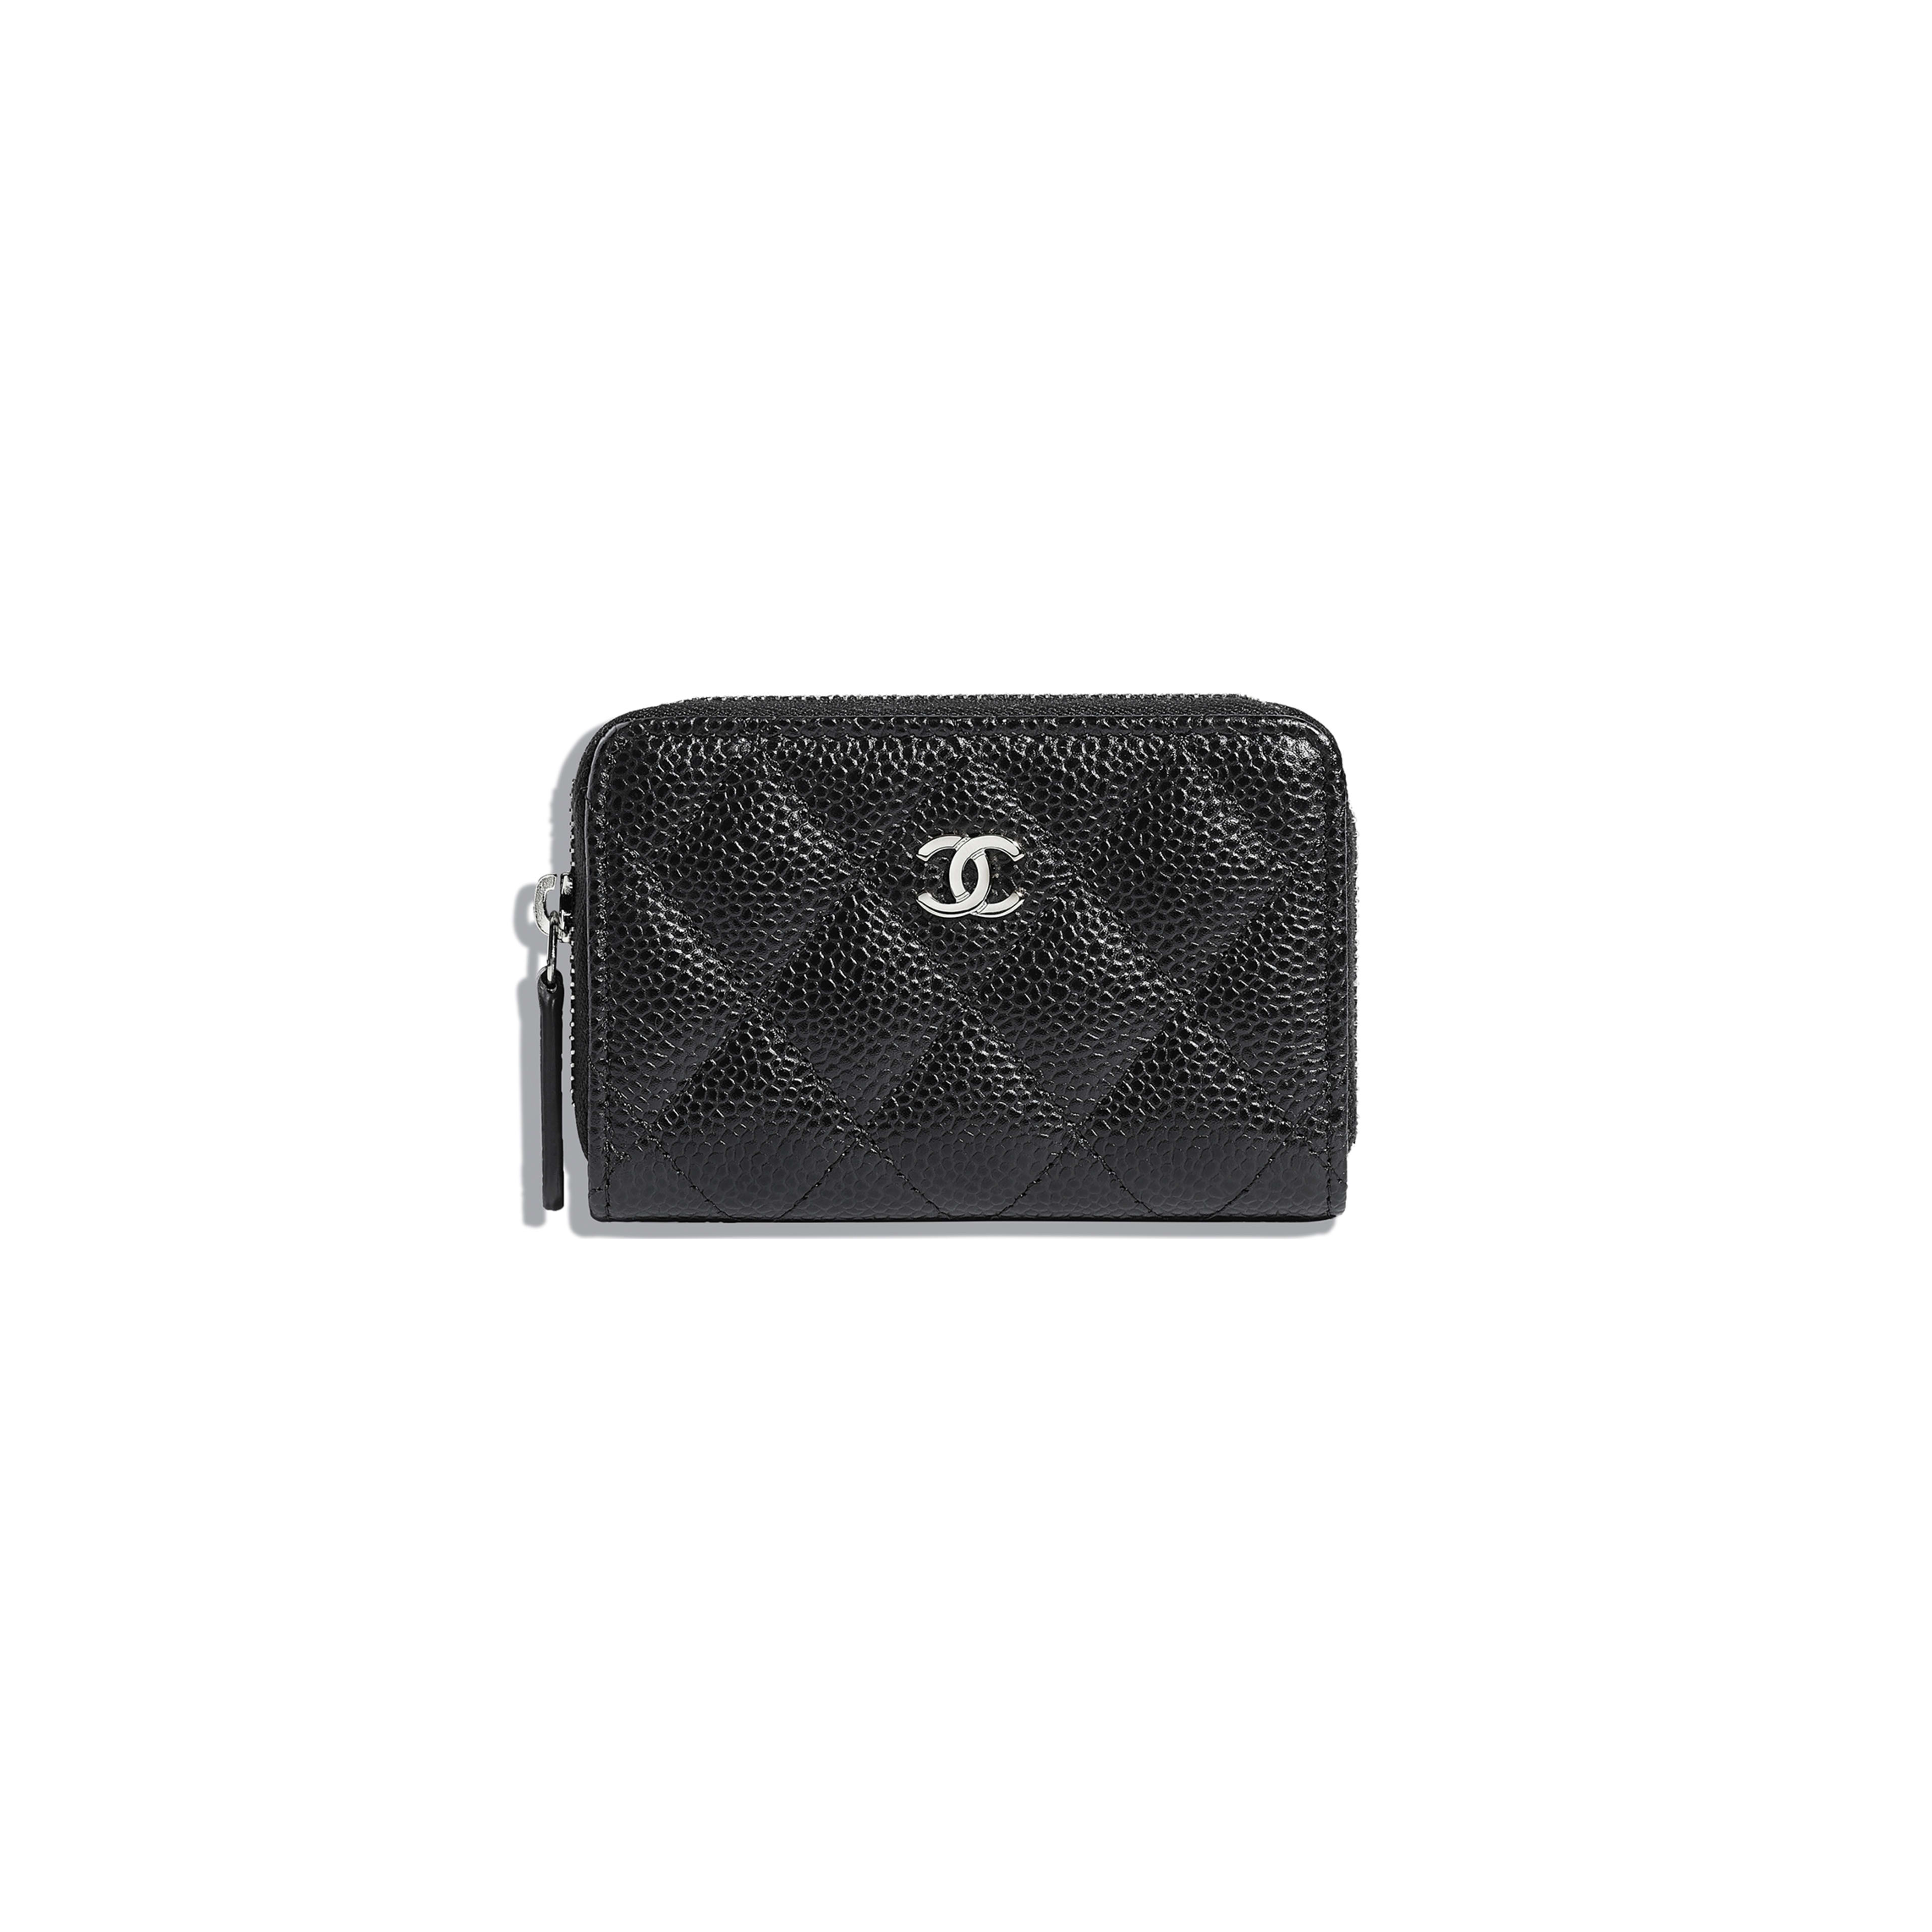 Classic Zipped Coin Purse - Black - Grained Calfskin & Silver-Tone Metal - Default view - see full sized version